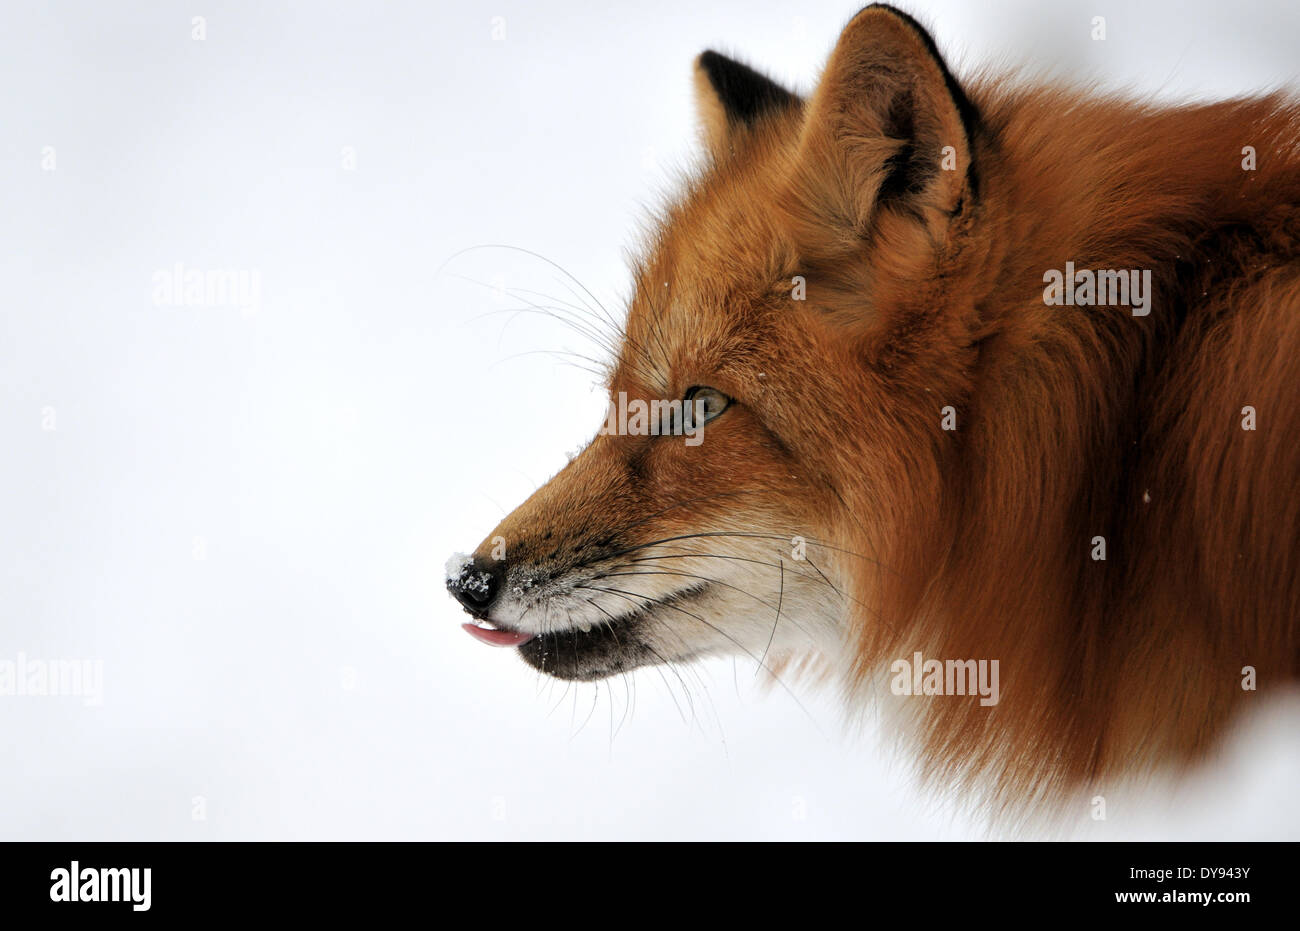 Red fox fox predator canids crafty European fox Vulpes vulpes foxes red fox winter coat winter skin snow winter animal anima - Stock Image